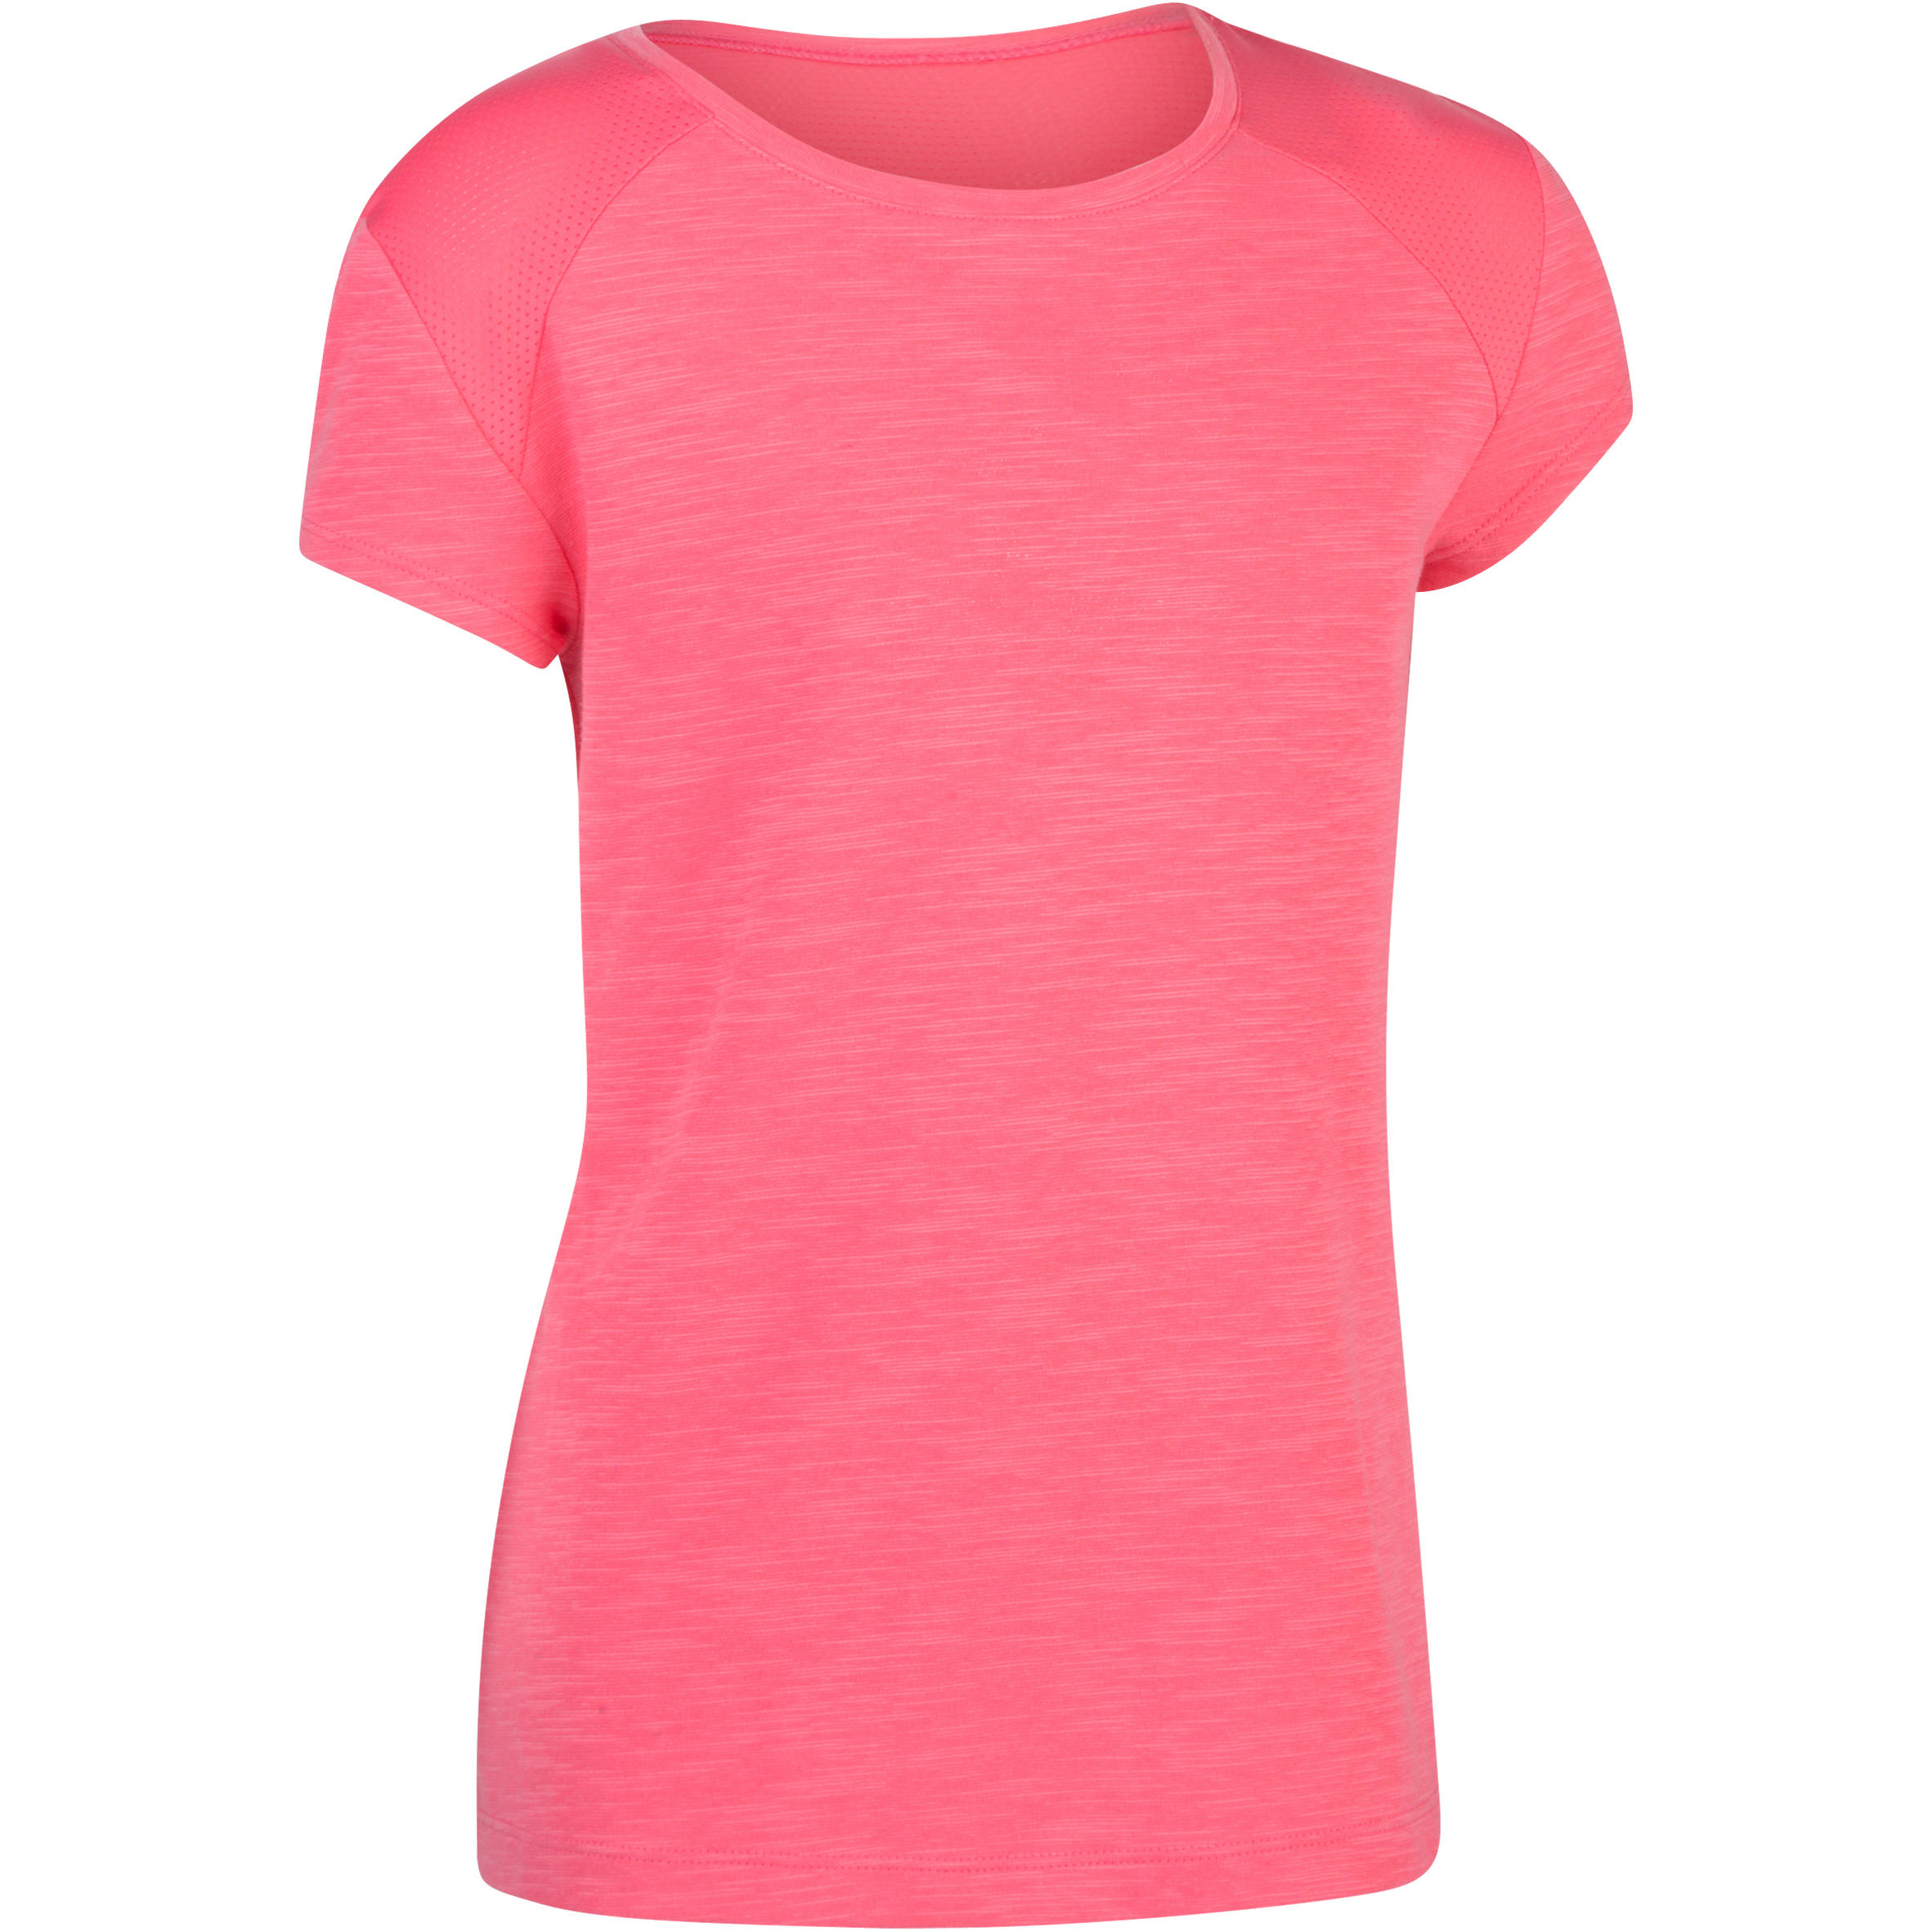 Tee-shirt 560 manches courtes gym fille rose